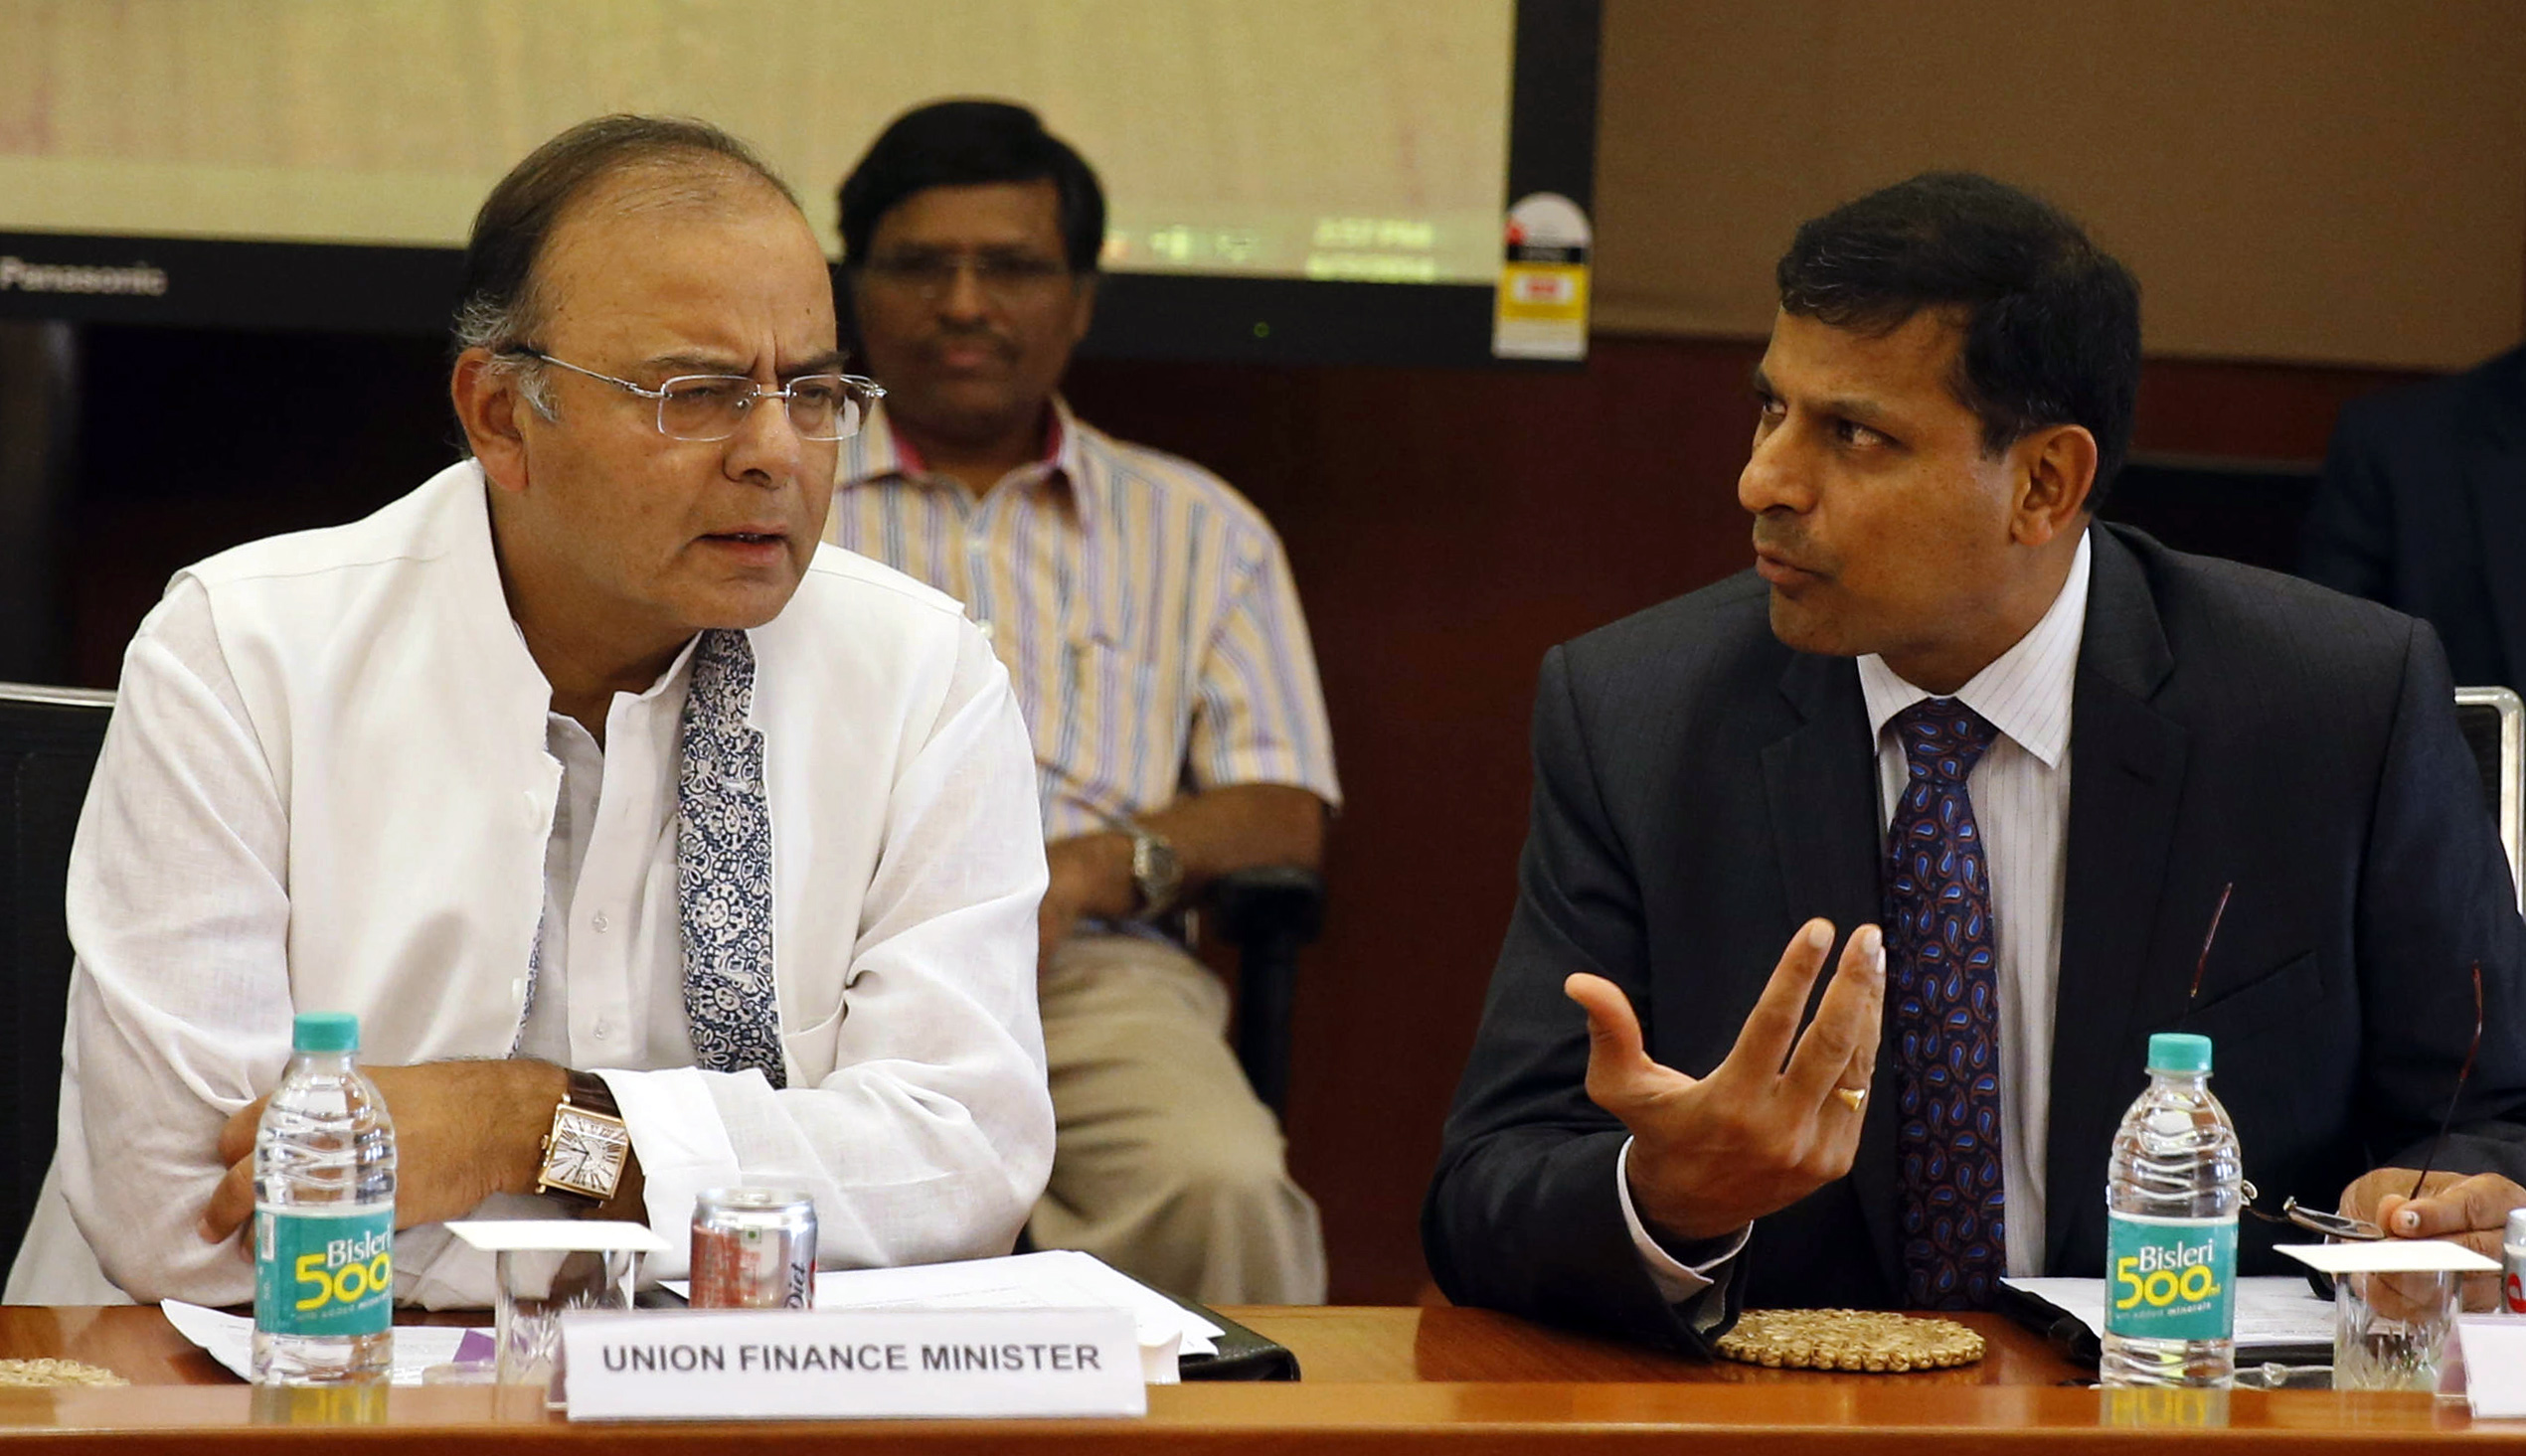 Govt to introduce monetary policy framework with focus on flexible inflation targeting